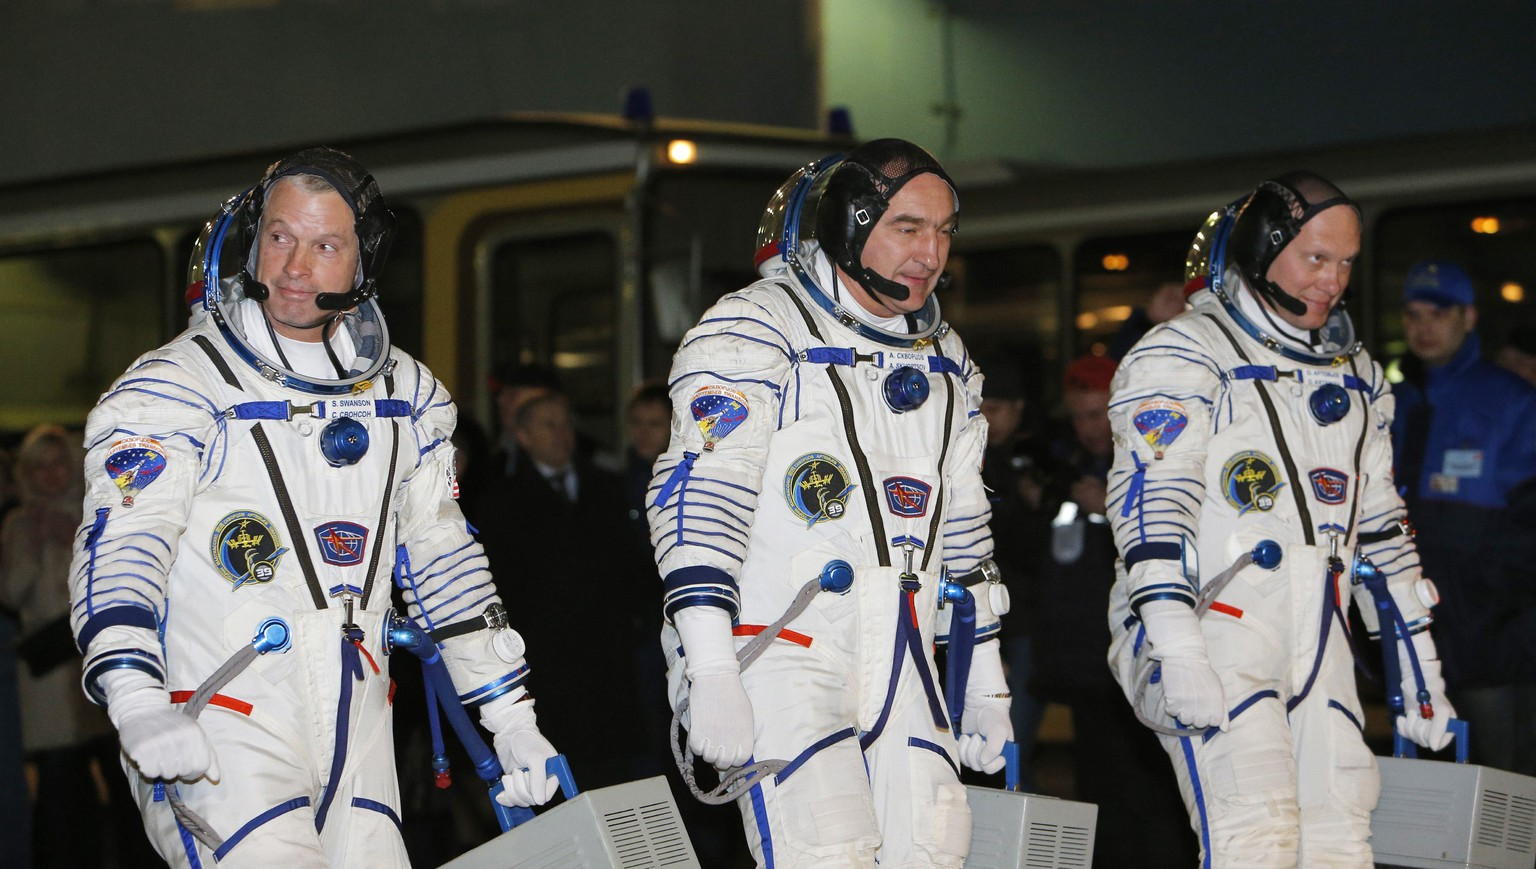 Members of the International Space Station (ISS) crew, (L-R) U.S. astronaut Steven Swanson and Russian cosmonauts Alexander Skvortsov and Oleg Artemyev walk prior their launch at the Baikonur cosmodrome March 26, 2014. REUTERS/Maxim Shemetov (KAZAKHSTAN - Tags: SCIENCE TECHNOLOGY TRANSPORT)